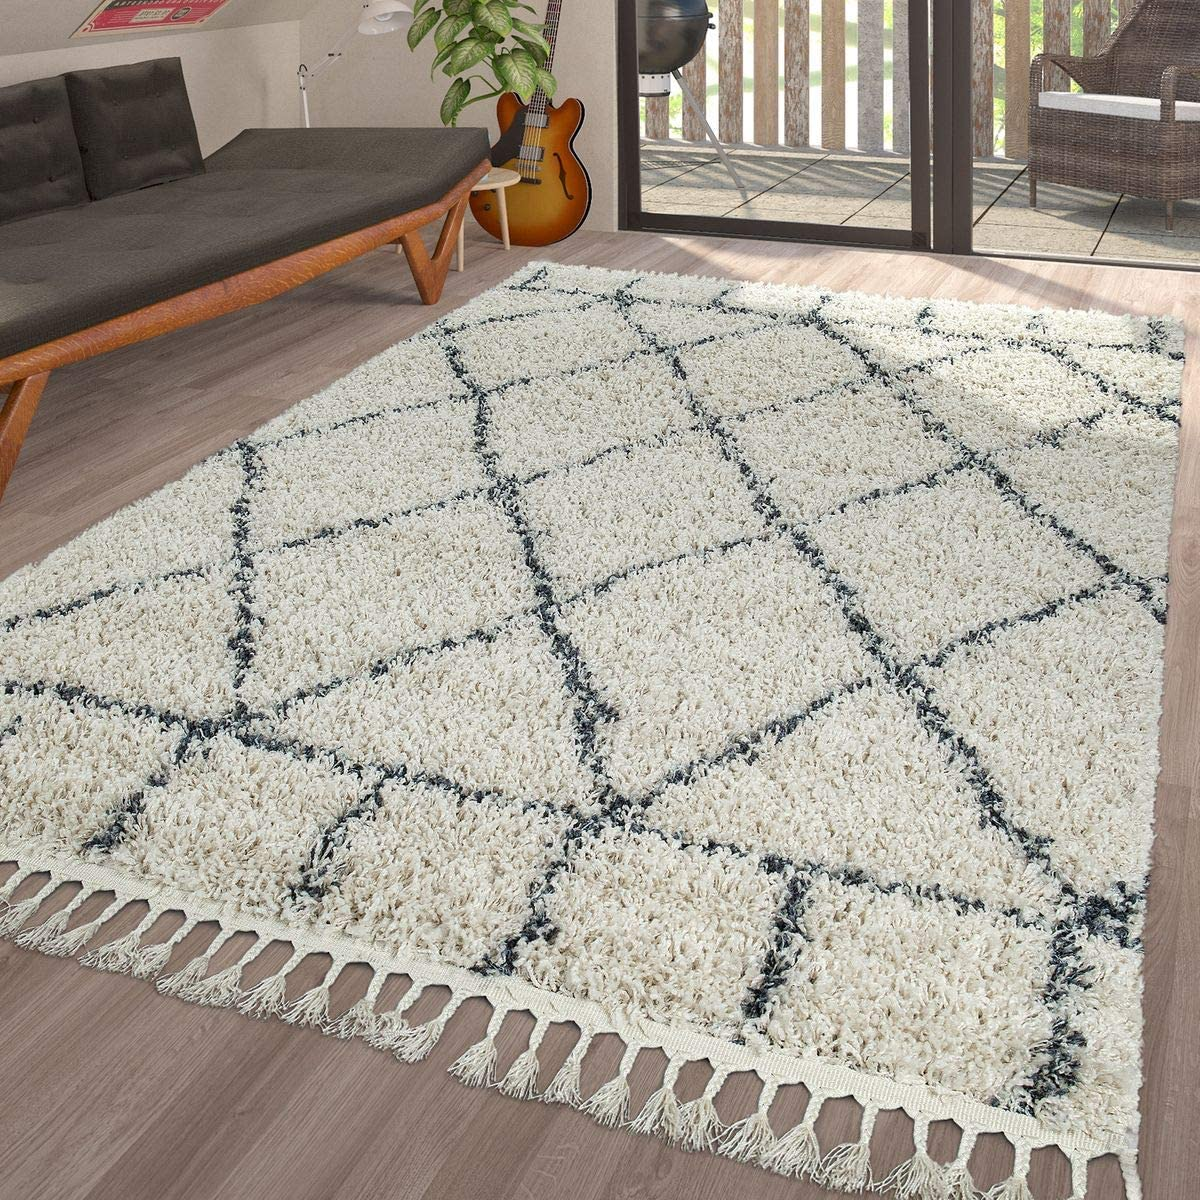 Rug Living Room Shaggy Modern Diamond Pattern Deep Pile Diamond